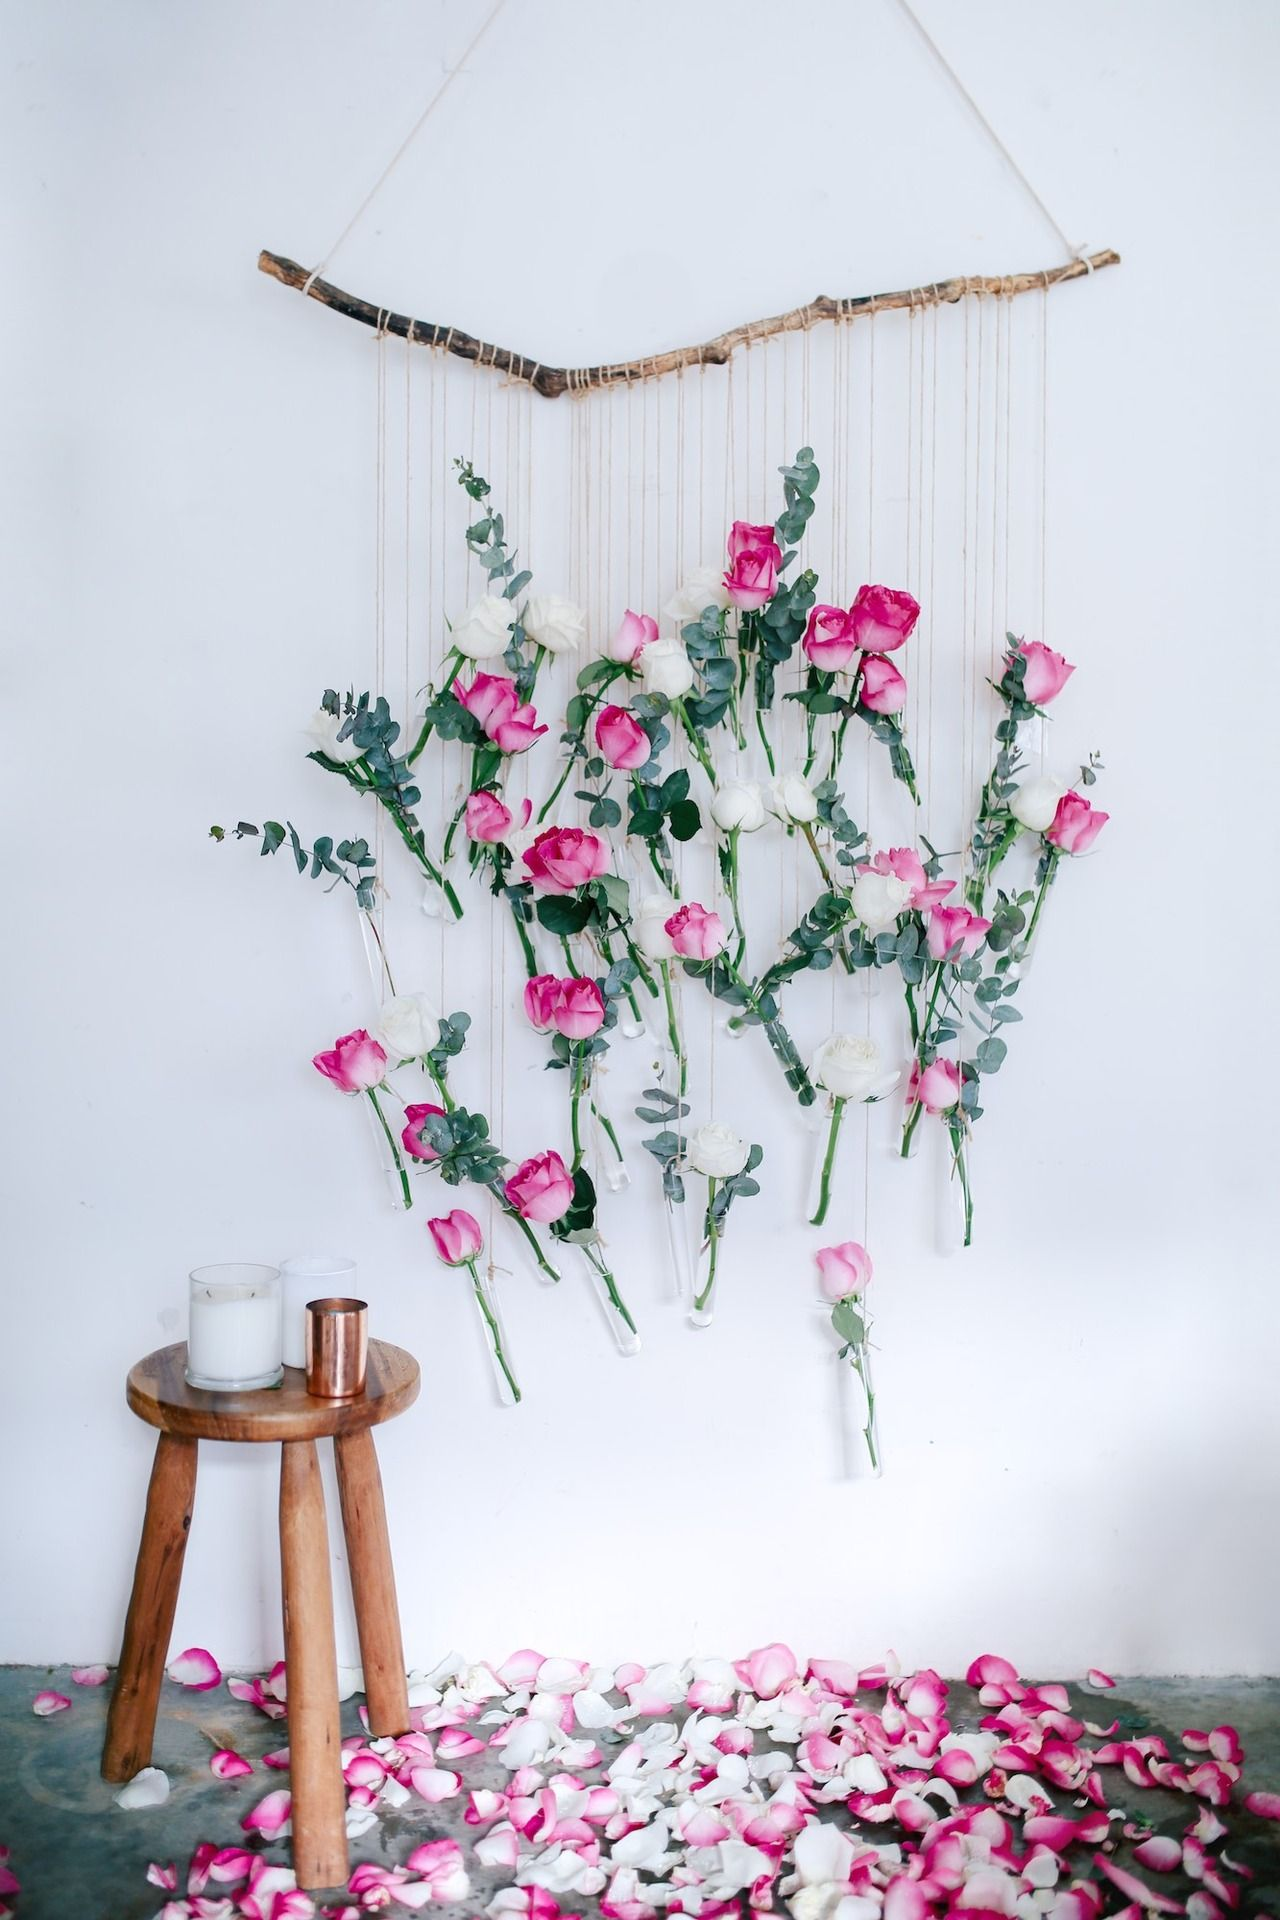 Flower Vase Ideas For Decorating Diy Floral Vase Wall Hanging Using Rose And Eucalyptus